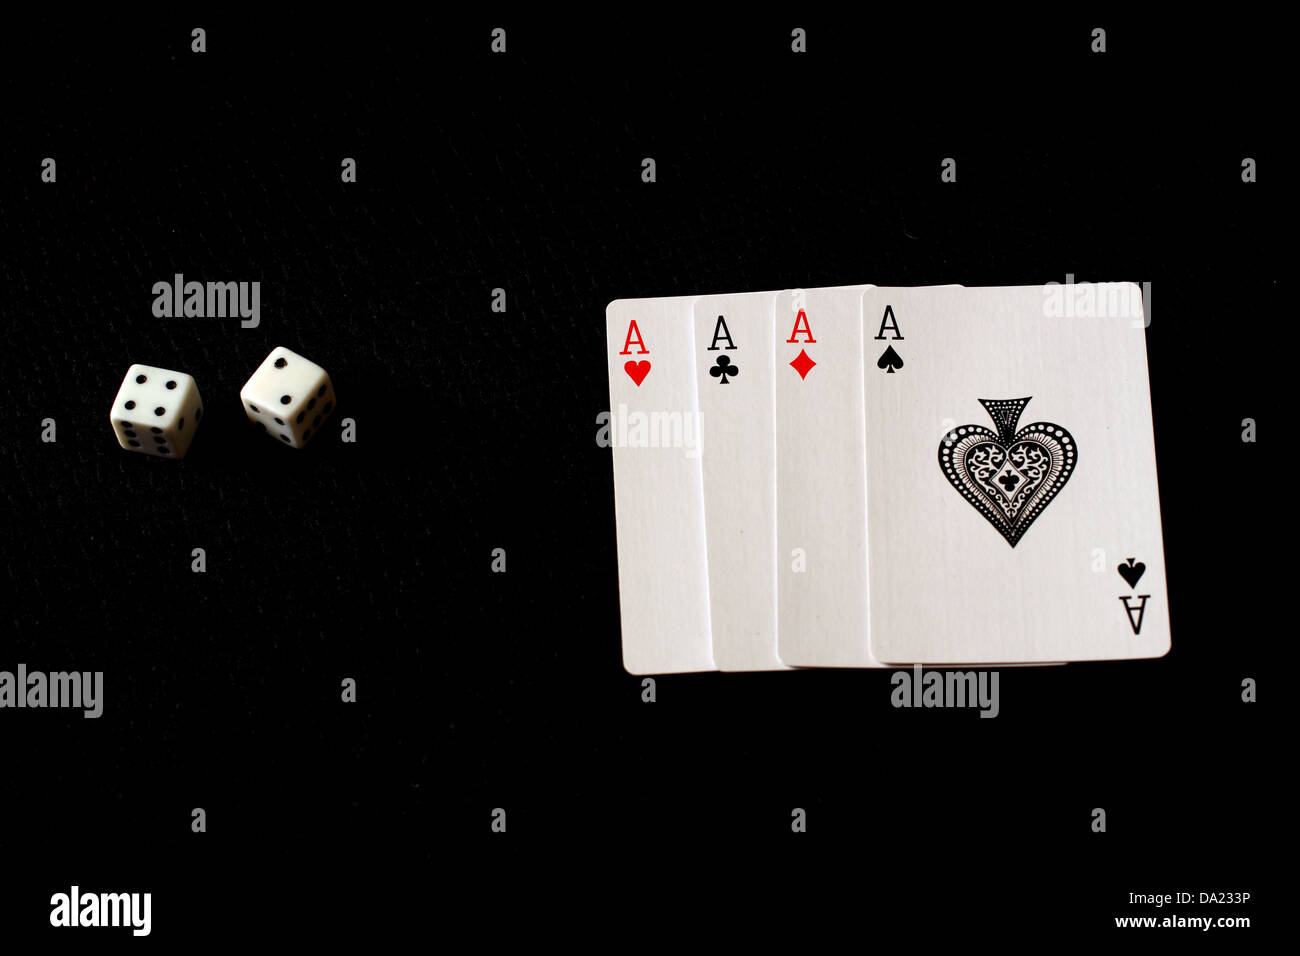 4  playing cards showing,club,diamond, and to dices showing numbers 2 and 4 on a black backdrop. - Stock Image